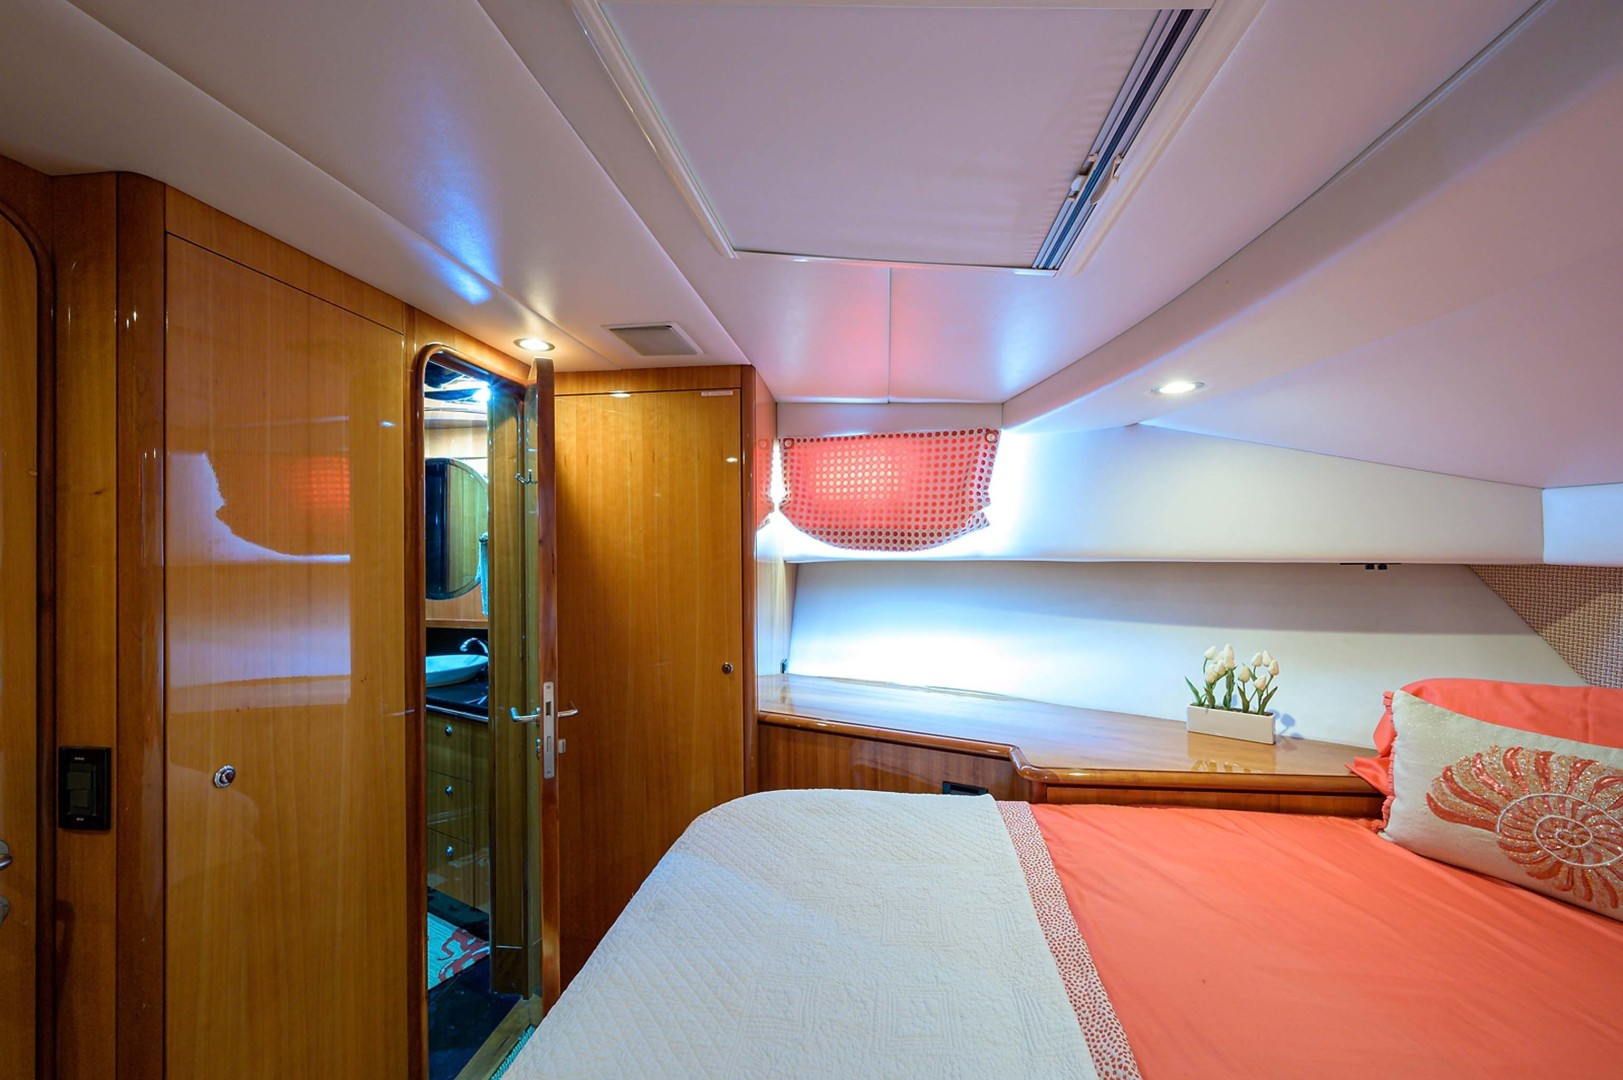 Queenship-Pilothouse Motor Yacht 1996-UNBRIDLED Stuart-Florida-United States-VIP Situated Forward of the Master Stateroom-1383302 | Thumbnail